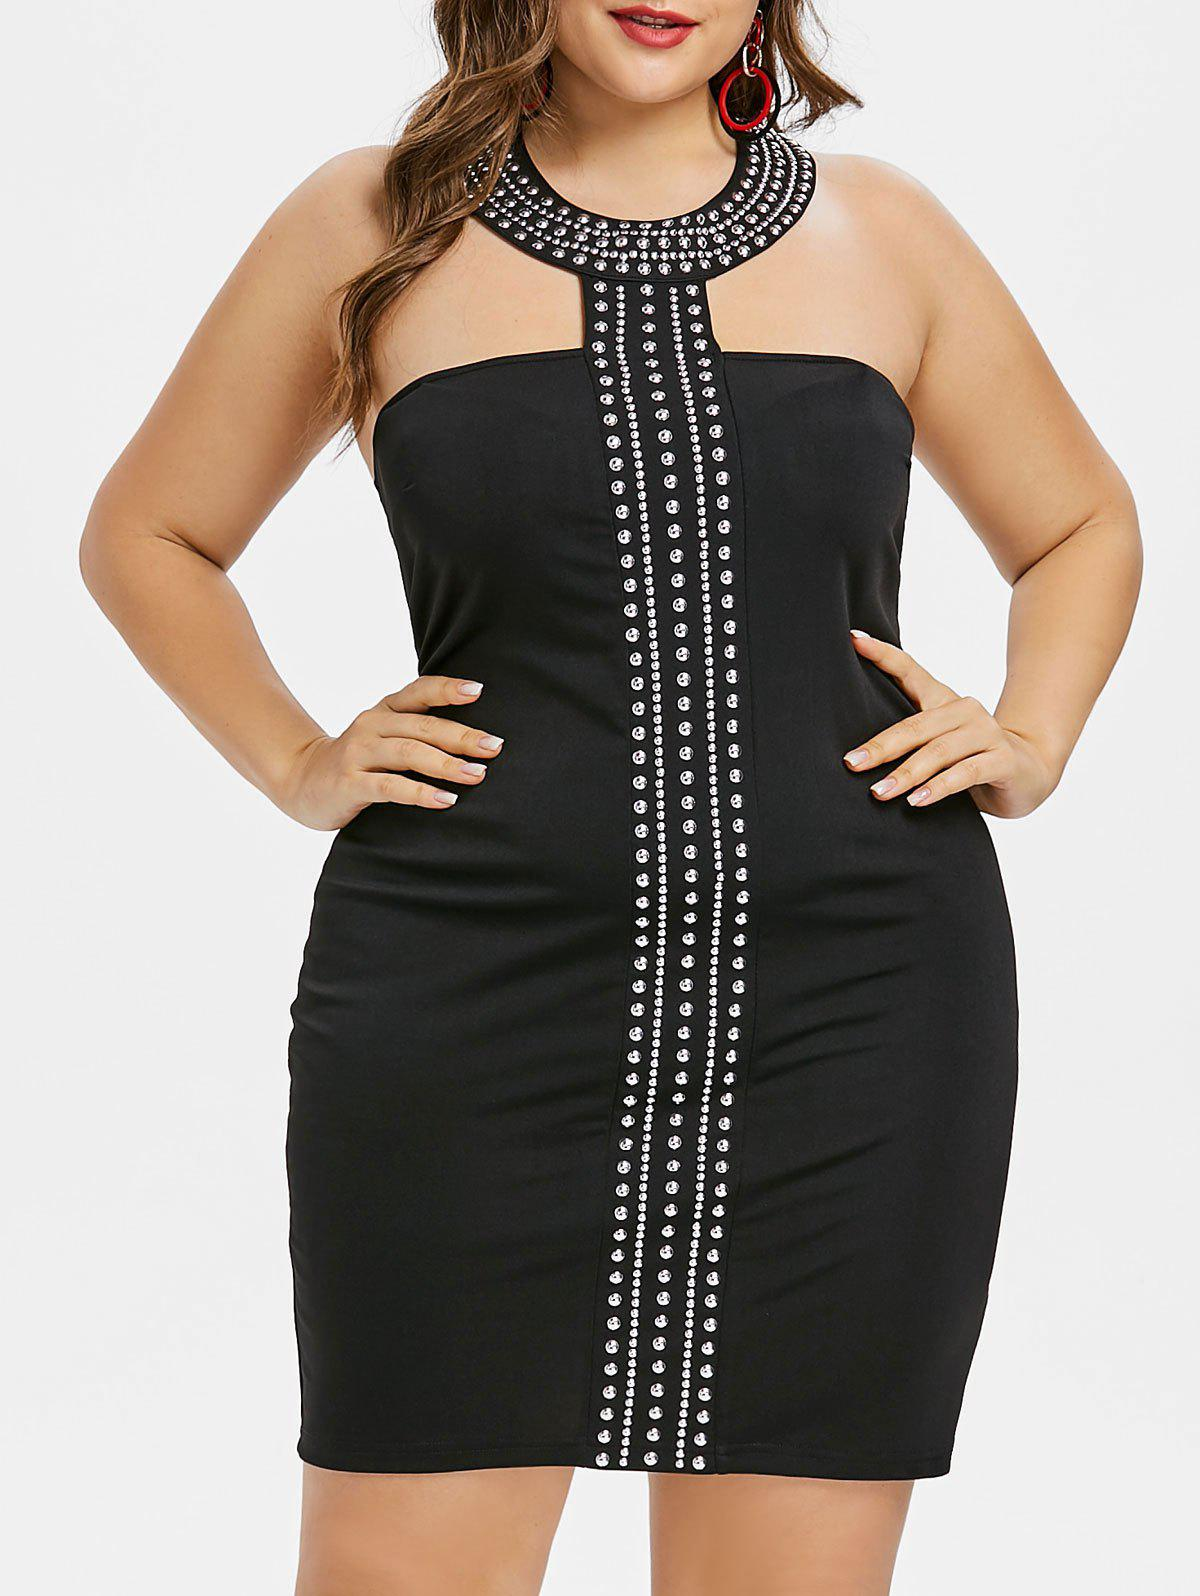 9f86a567667 42% OFF  Choker Neck Plus Size Rhinestone Insert Bodycon Dress